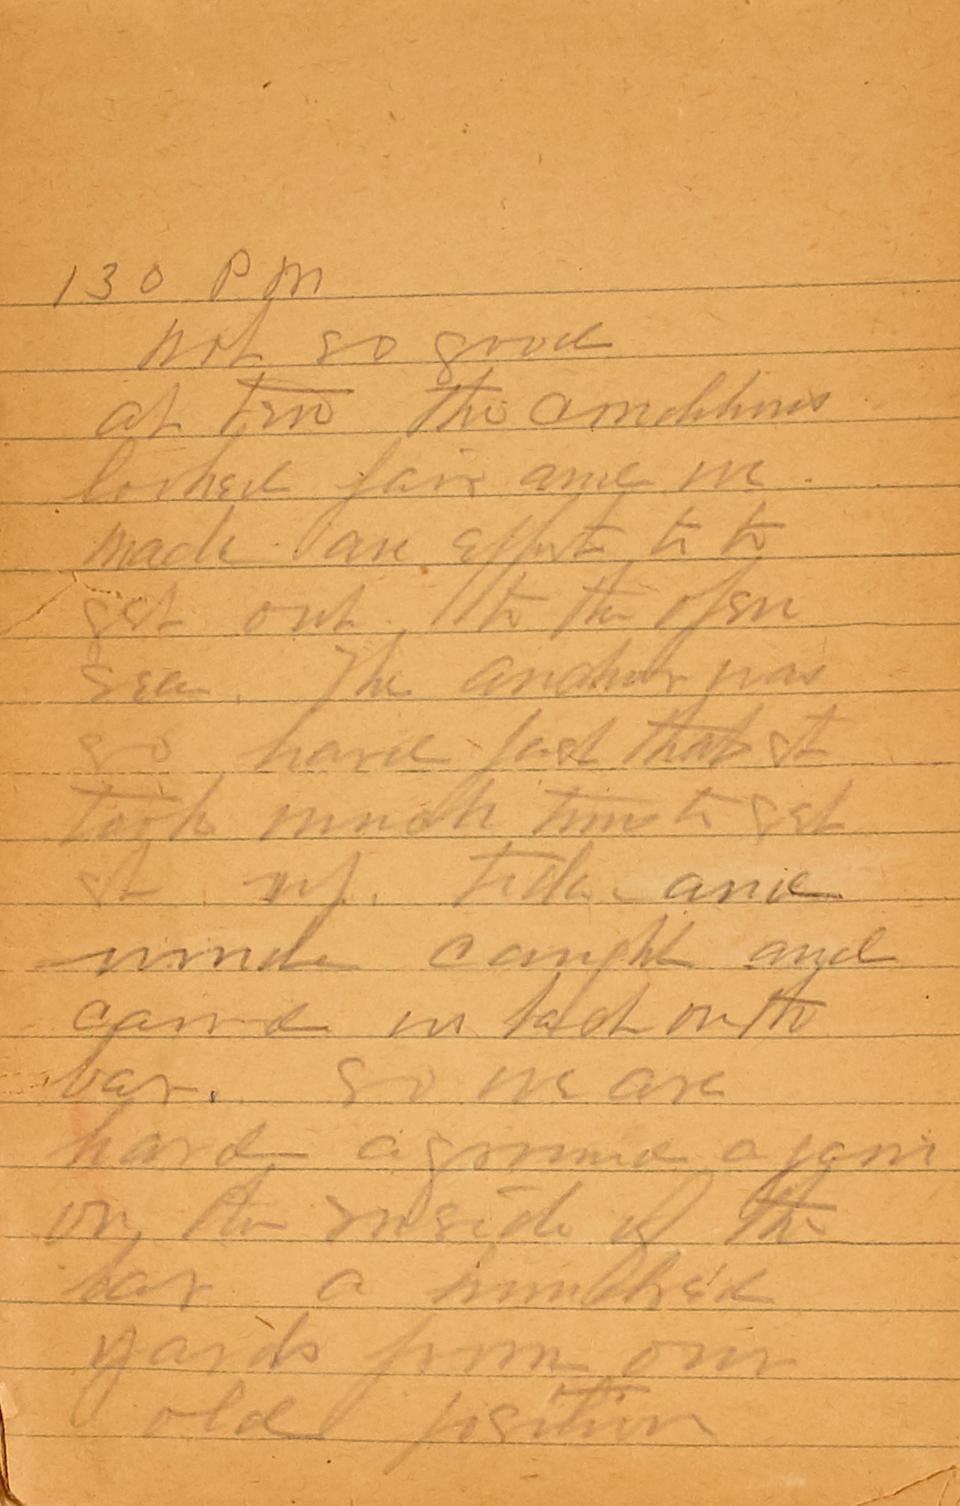 """LOGS AND JOURNALS OF CURTIS'S 1927 ALASKA EXPEDITION. 1.""""Original Log—1927—Alaska."""" Autograph Manuscript Signed in block print (""""Edward S. Curtis"""") to upper cover, in pencil,"""